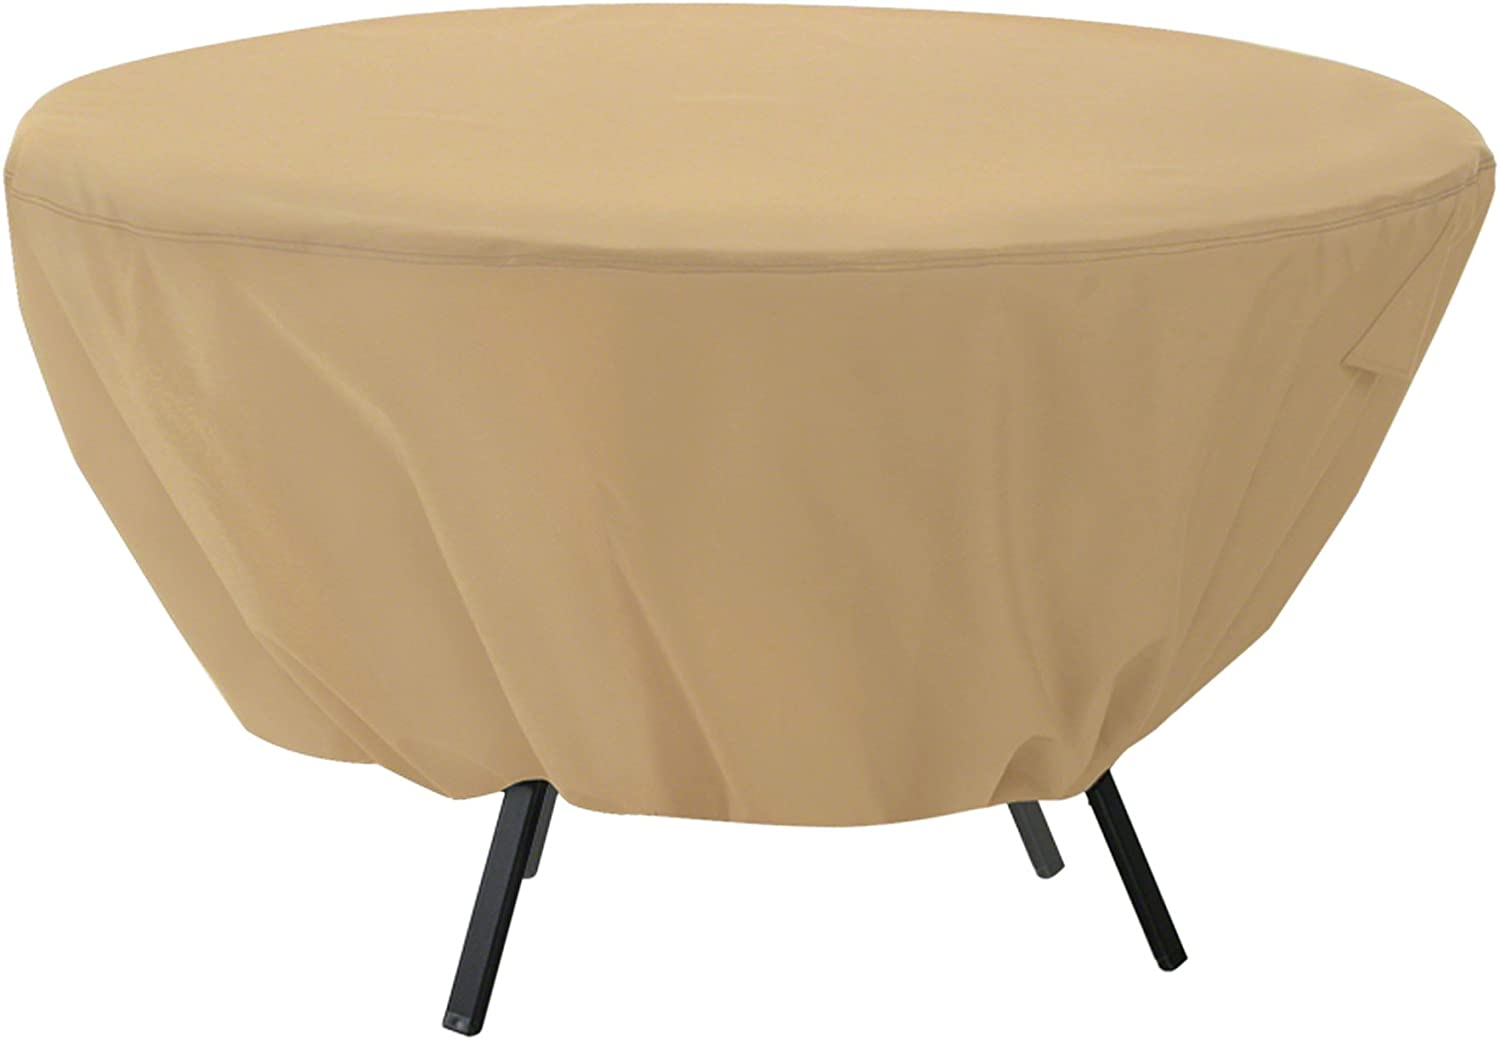 Classic Accessories Terrazzo Water-Resistant 50 Inch Round Patio Table Cover : Patio Furniture Covers : Patio, Lawn & Garden